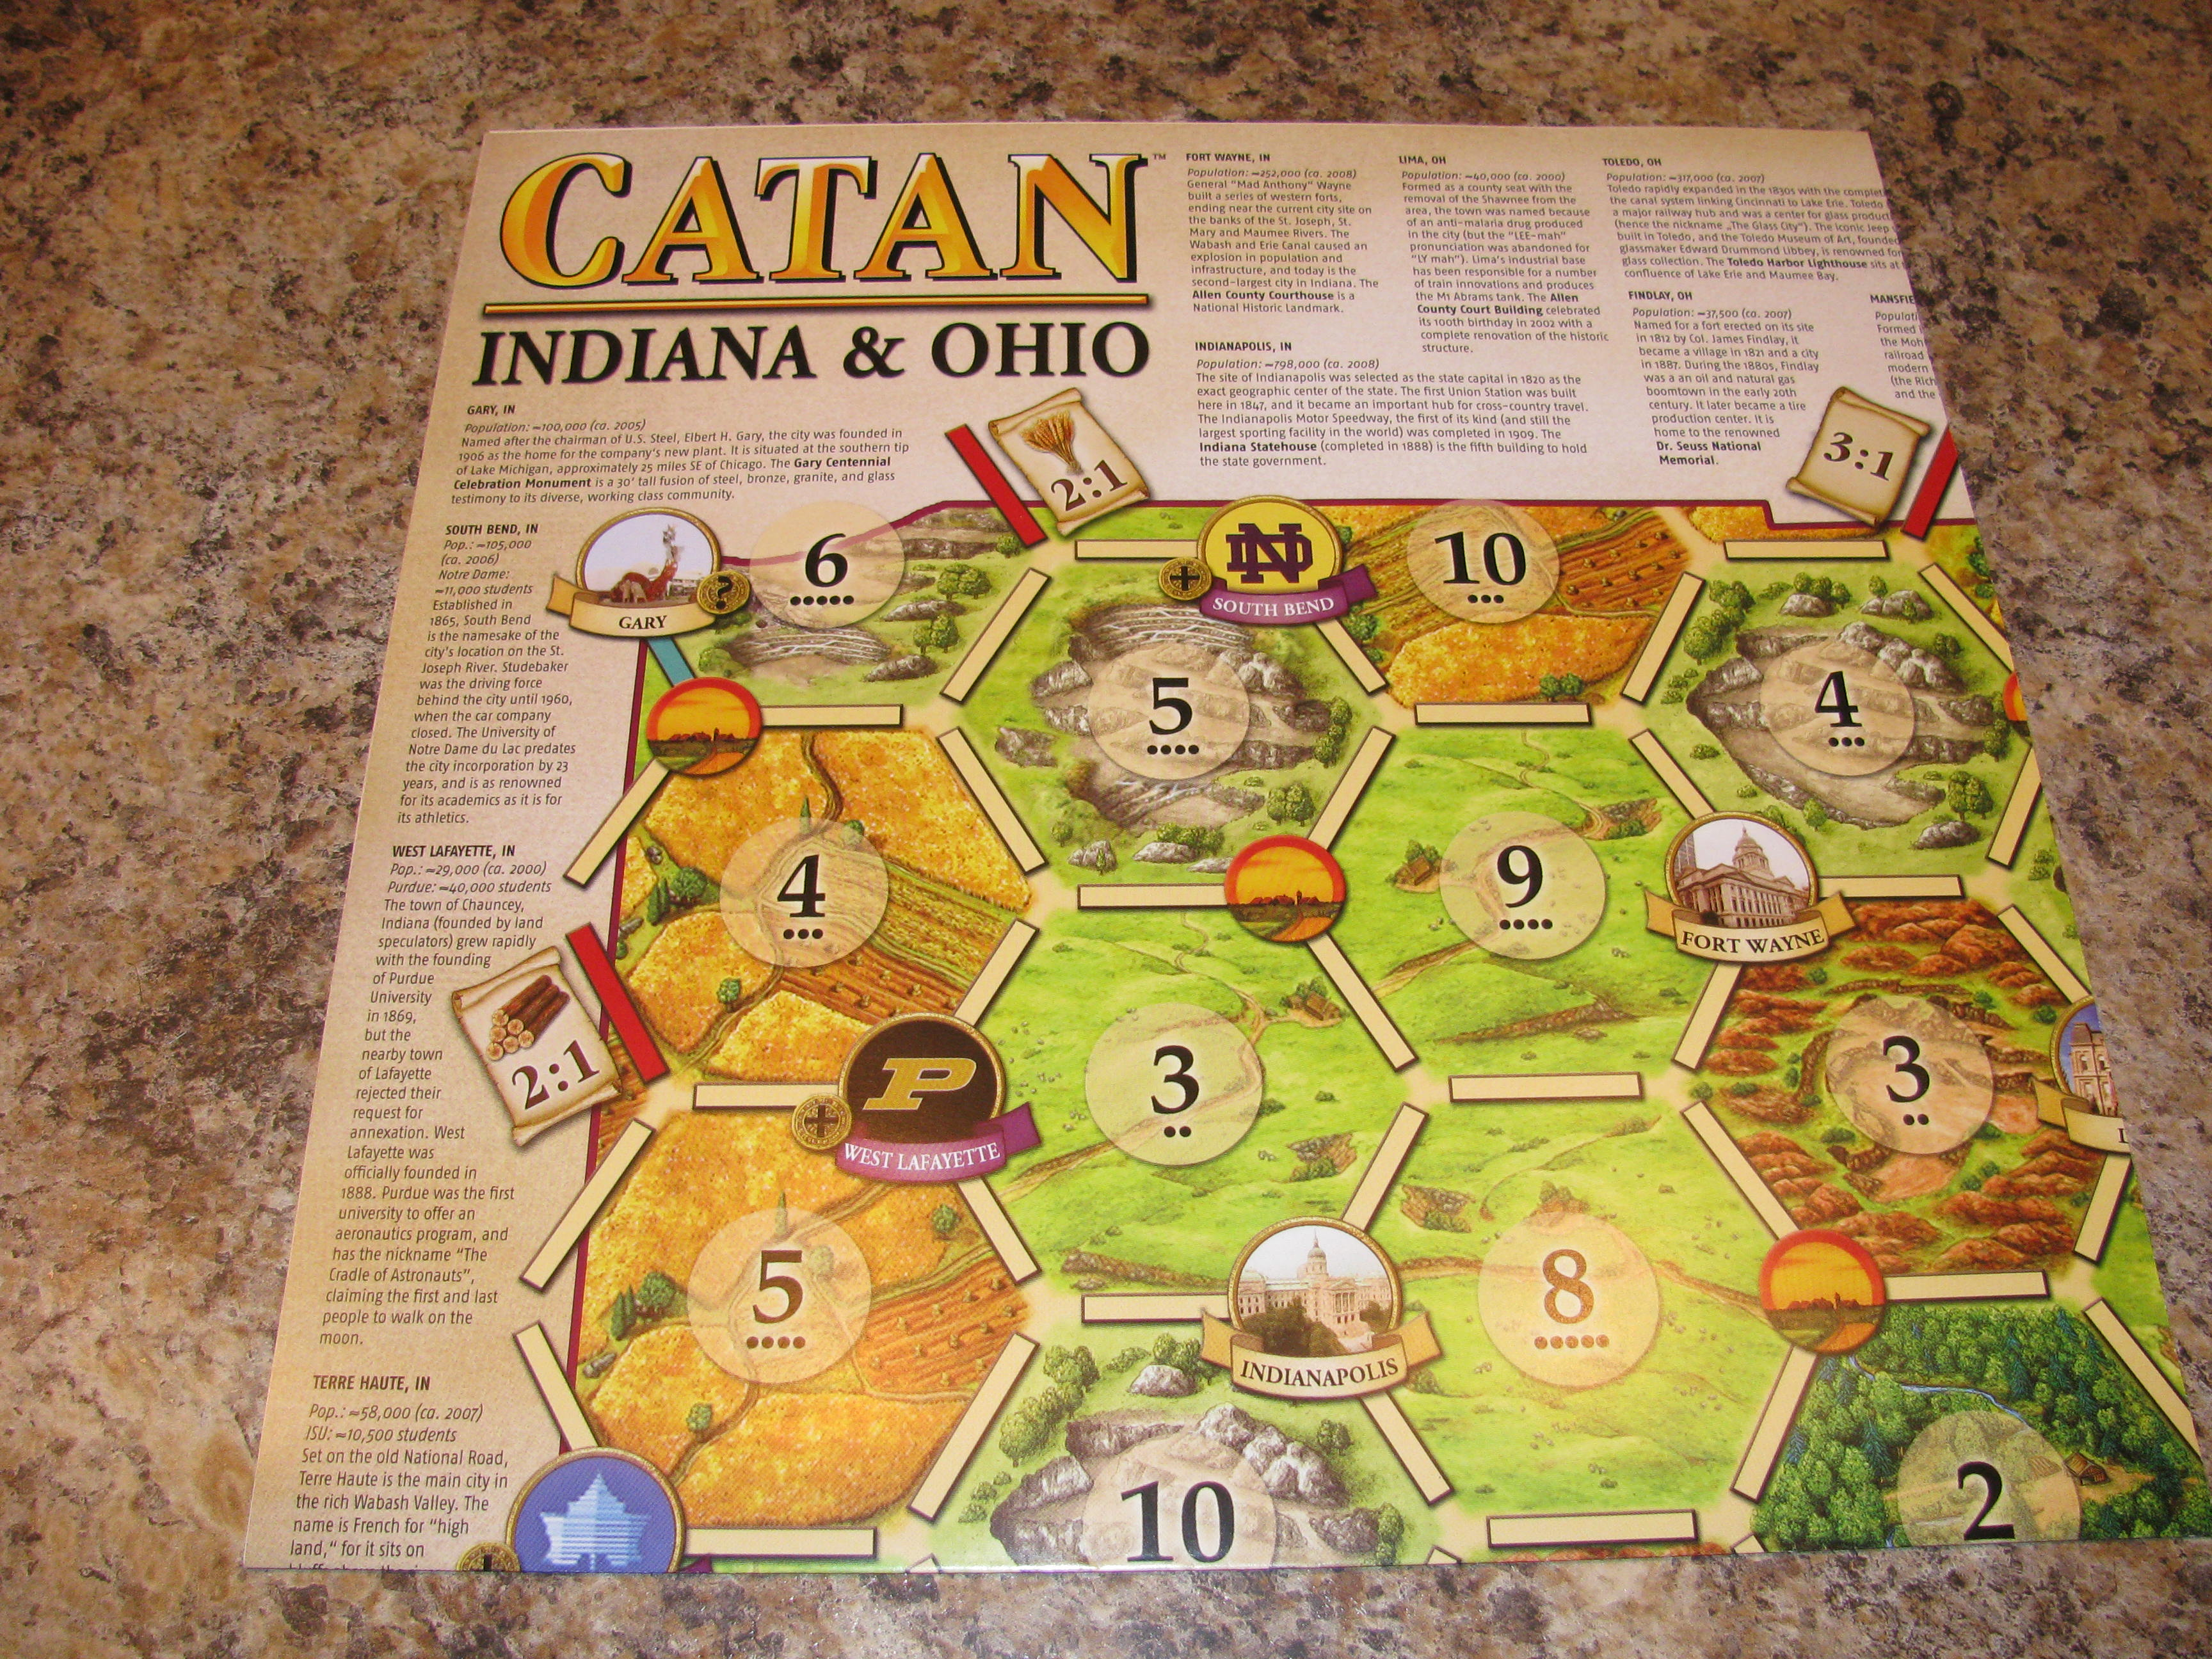 Catan Geographies: Indiana and Ohio